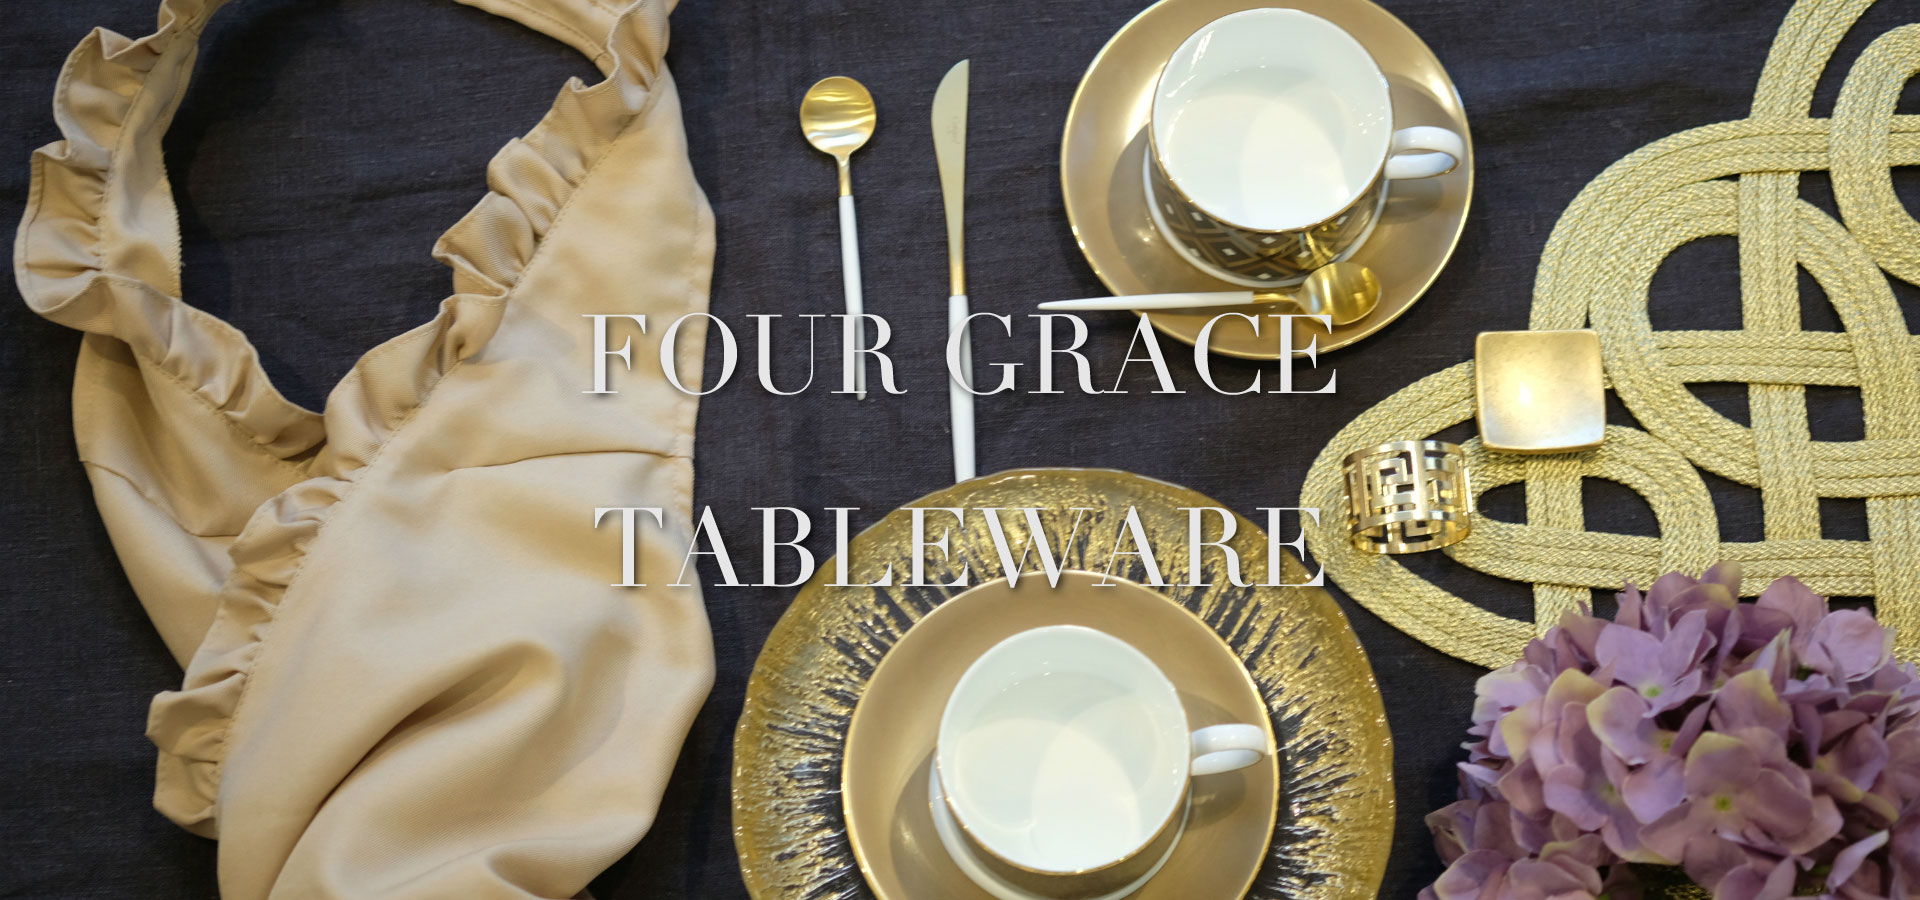 FOUR GRACE TABLEWARE GOLD